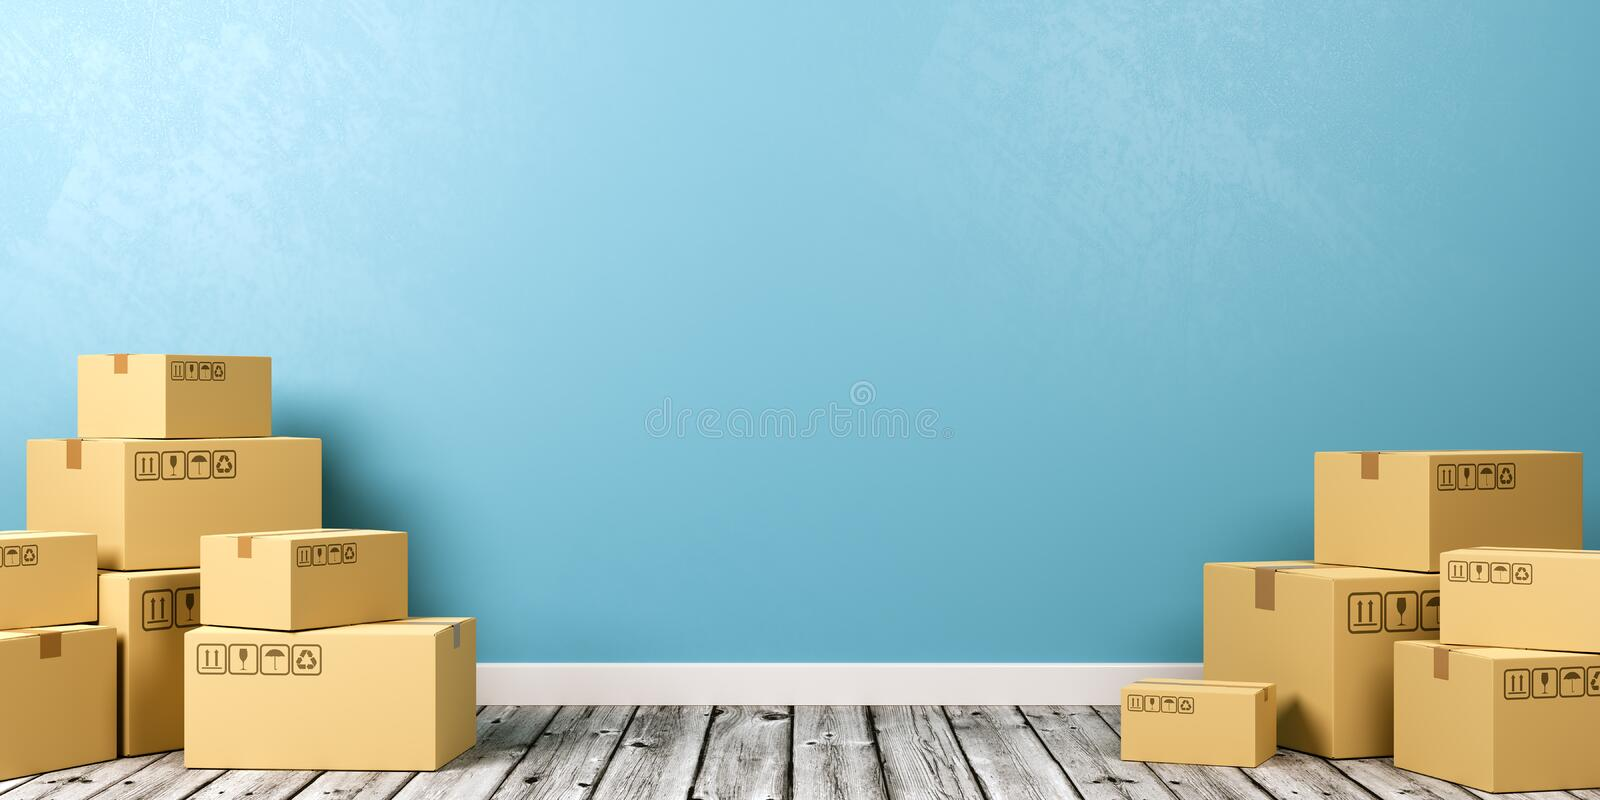 Cardboard Boxes on Wooden Floor vector illustration